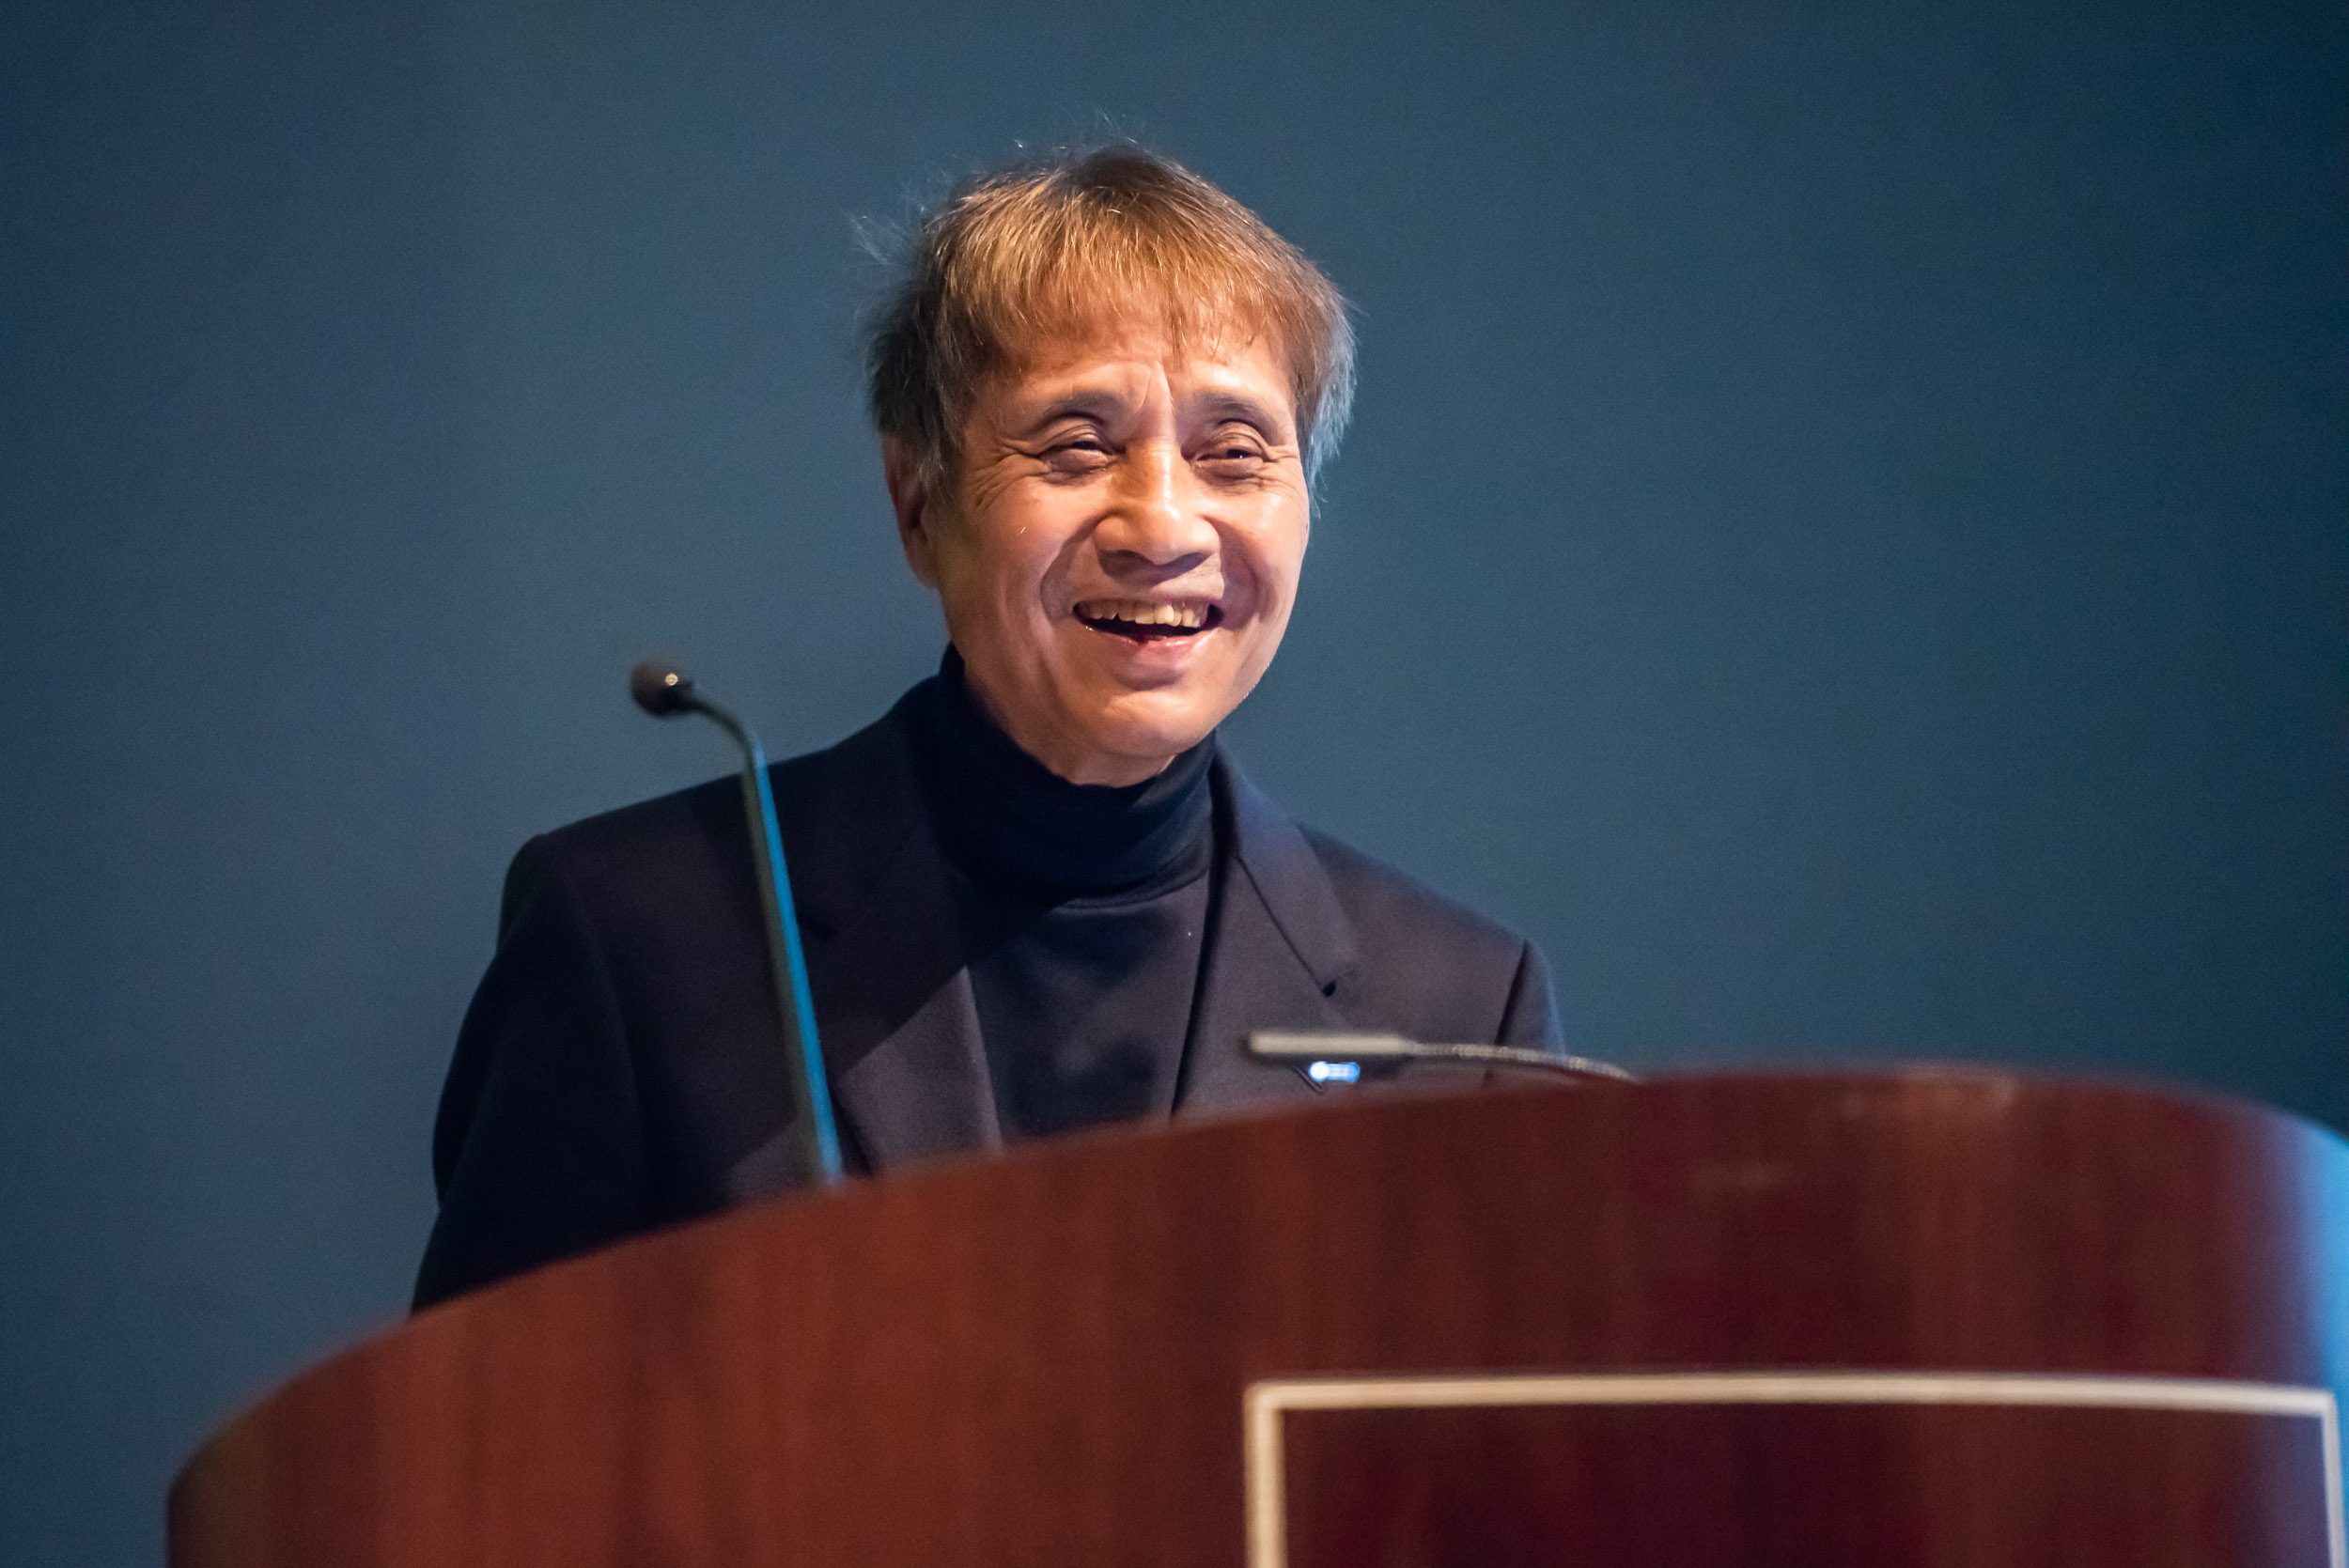 181011 - Tadao Ando Lecture - mark campbell photography-25_Resized.jpg